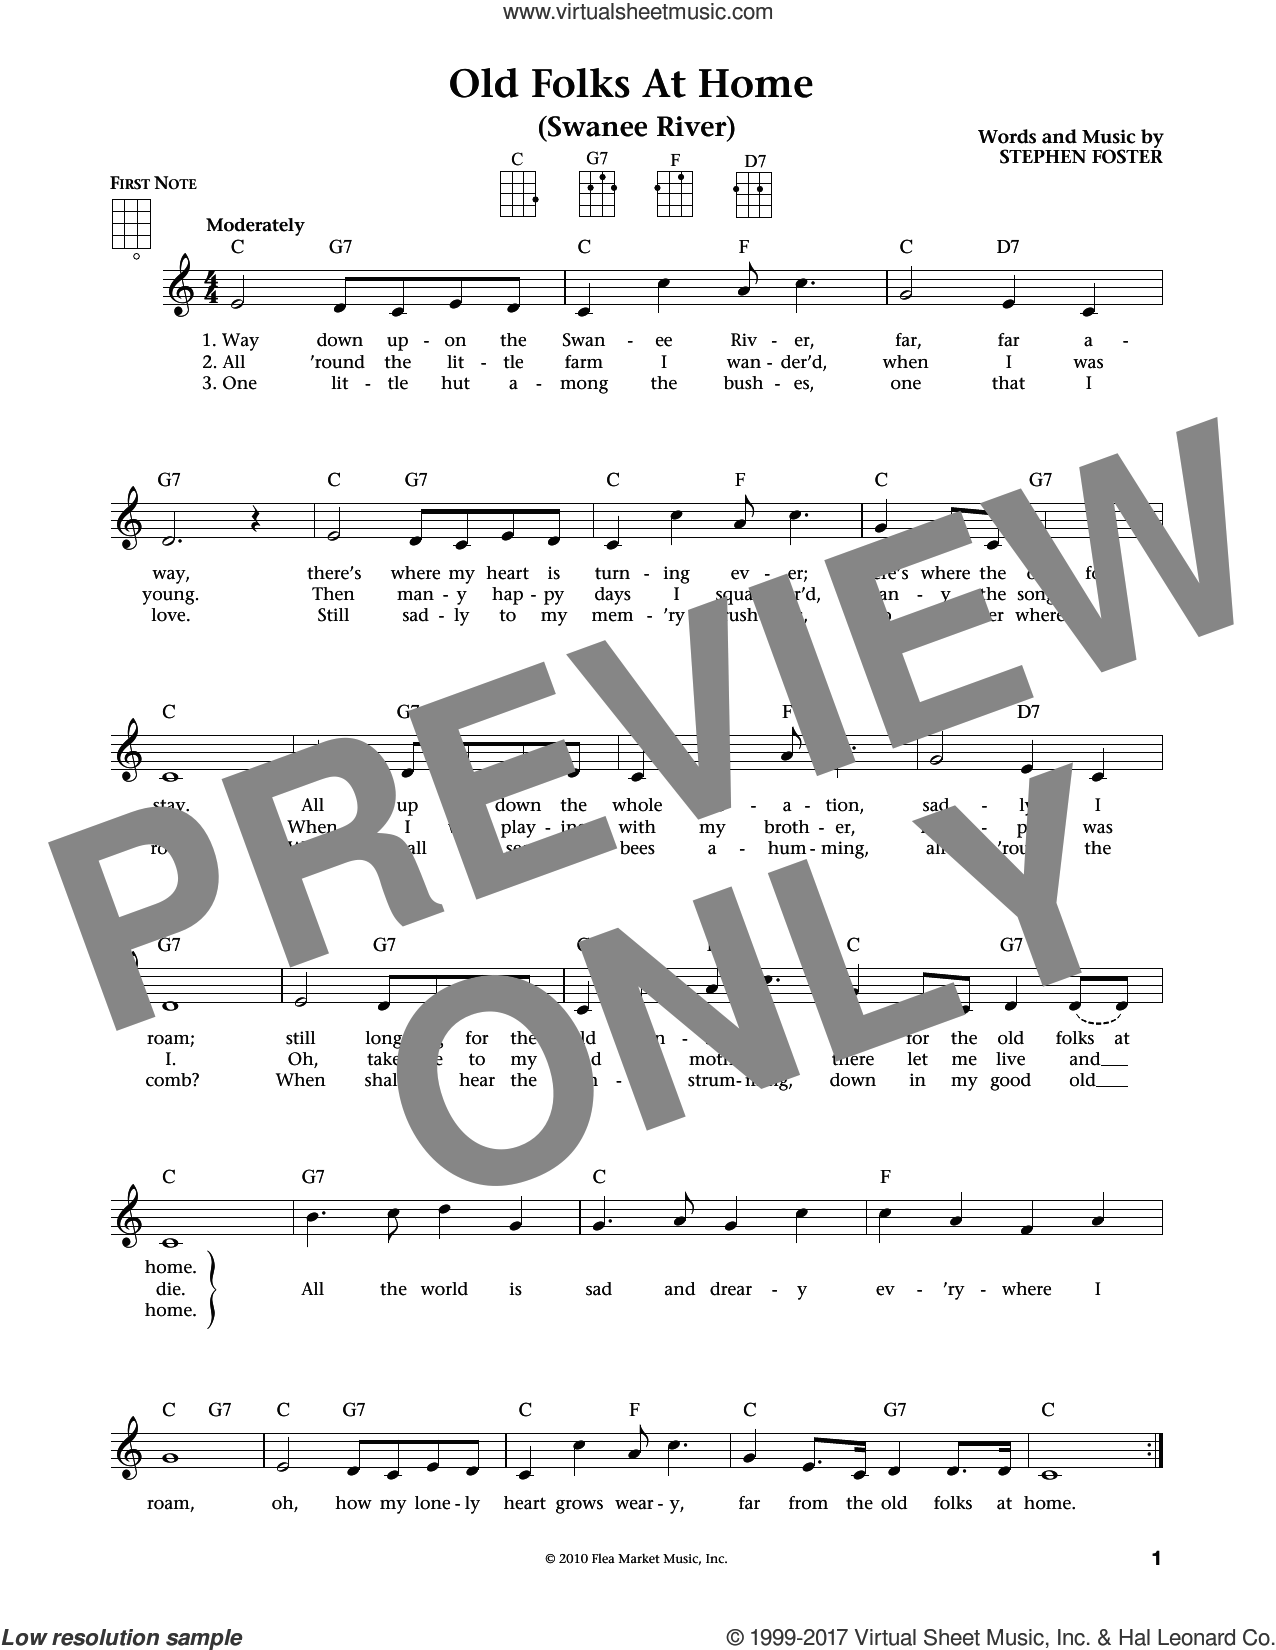 Old Folks At Home (Swanee River) (from The Daily Ukulele) (arr. Liz and Jim Beloff) sheet music for ukulele by Stephen Foster, Jim Beloff and Liz Beloff, intermediate skill level